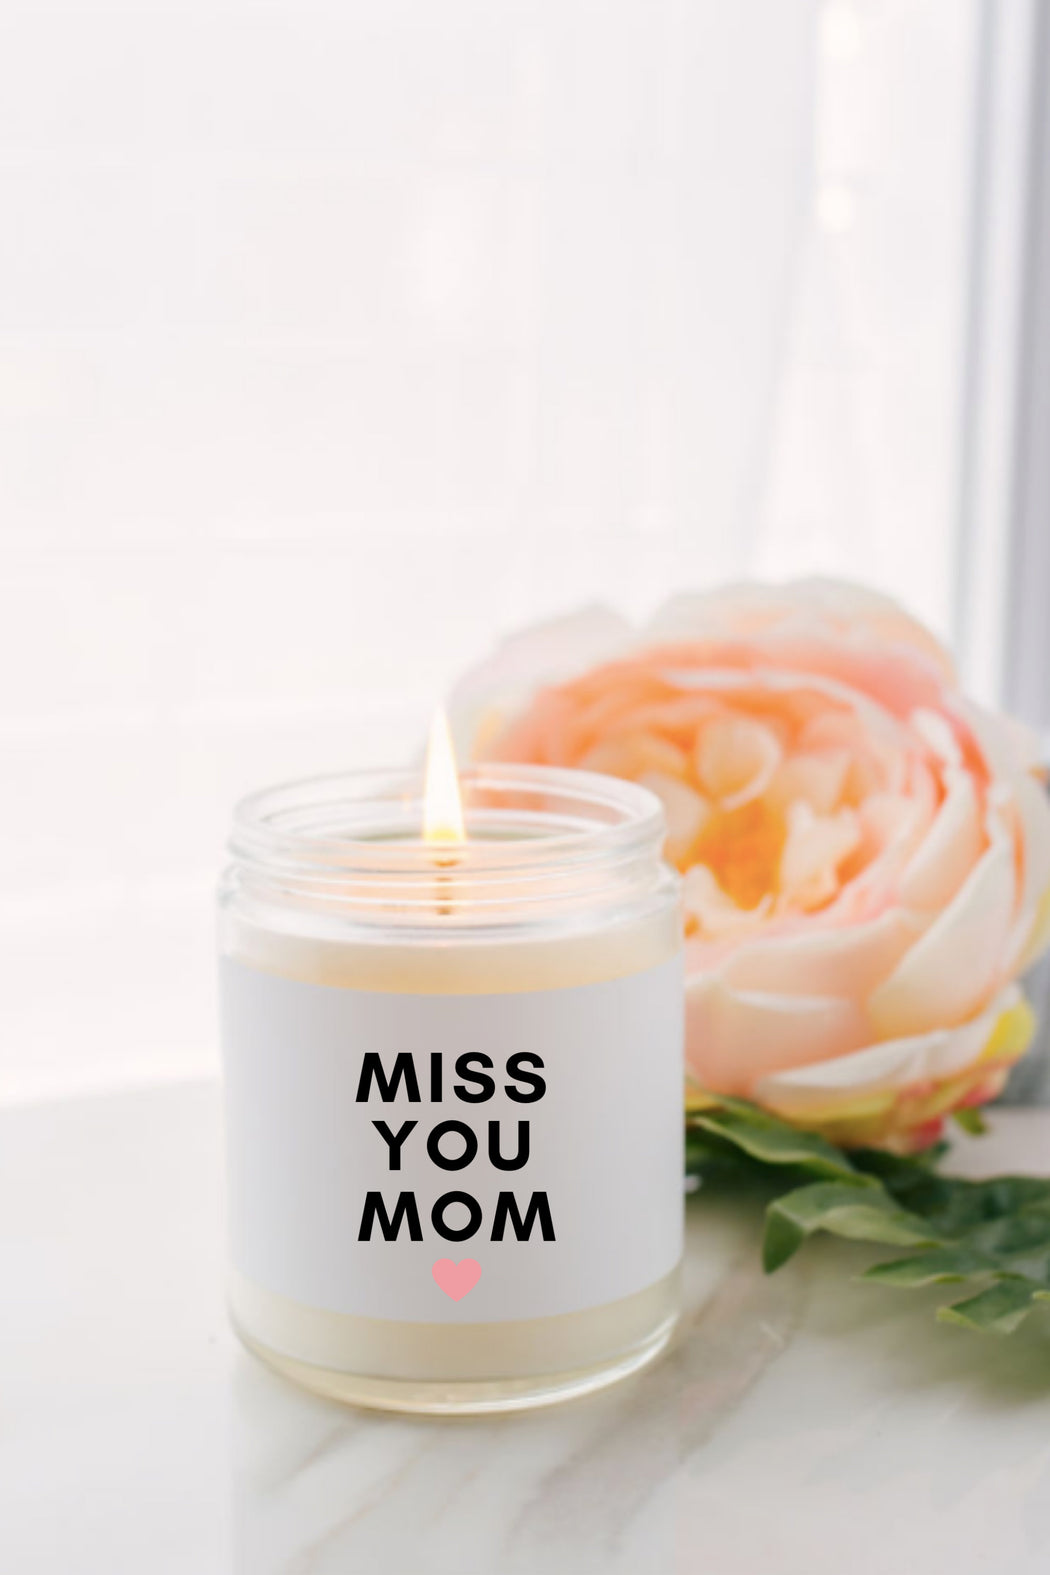 Miss You Mom Gift Box, Christmas Gifts for Mom,  New Mom Gift, Step Mom Gift, Spa Gift Set, Soy Candle Gift, Quarantine Gift.